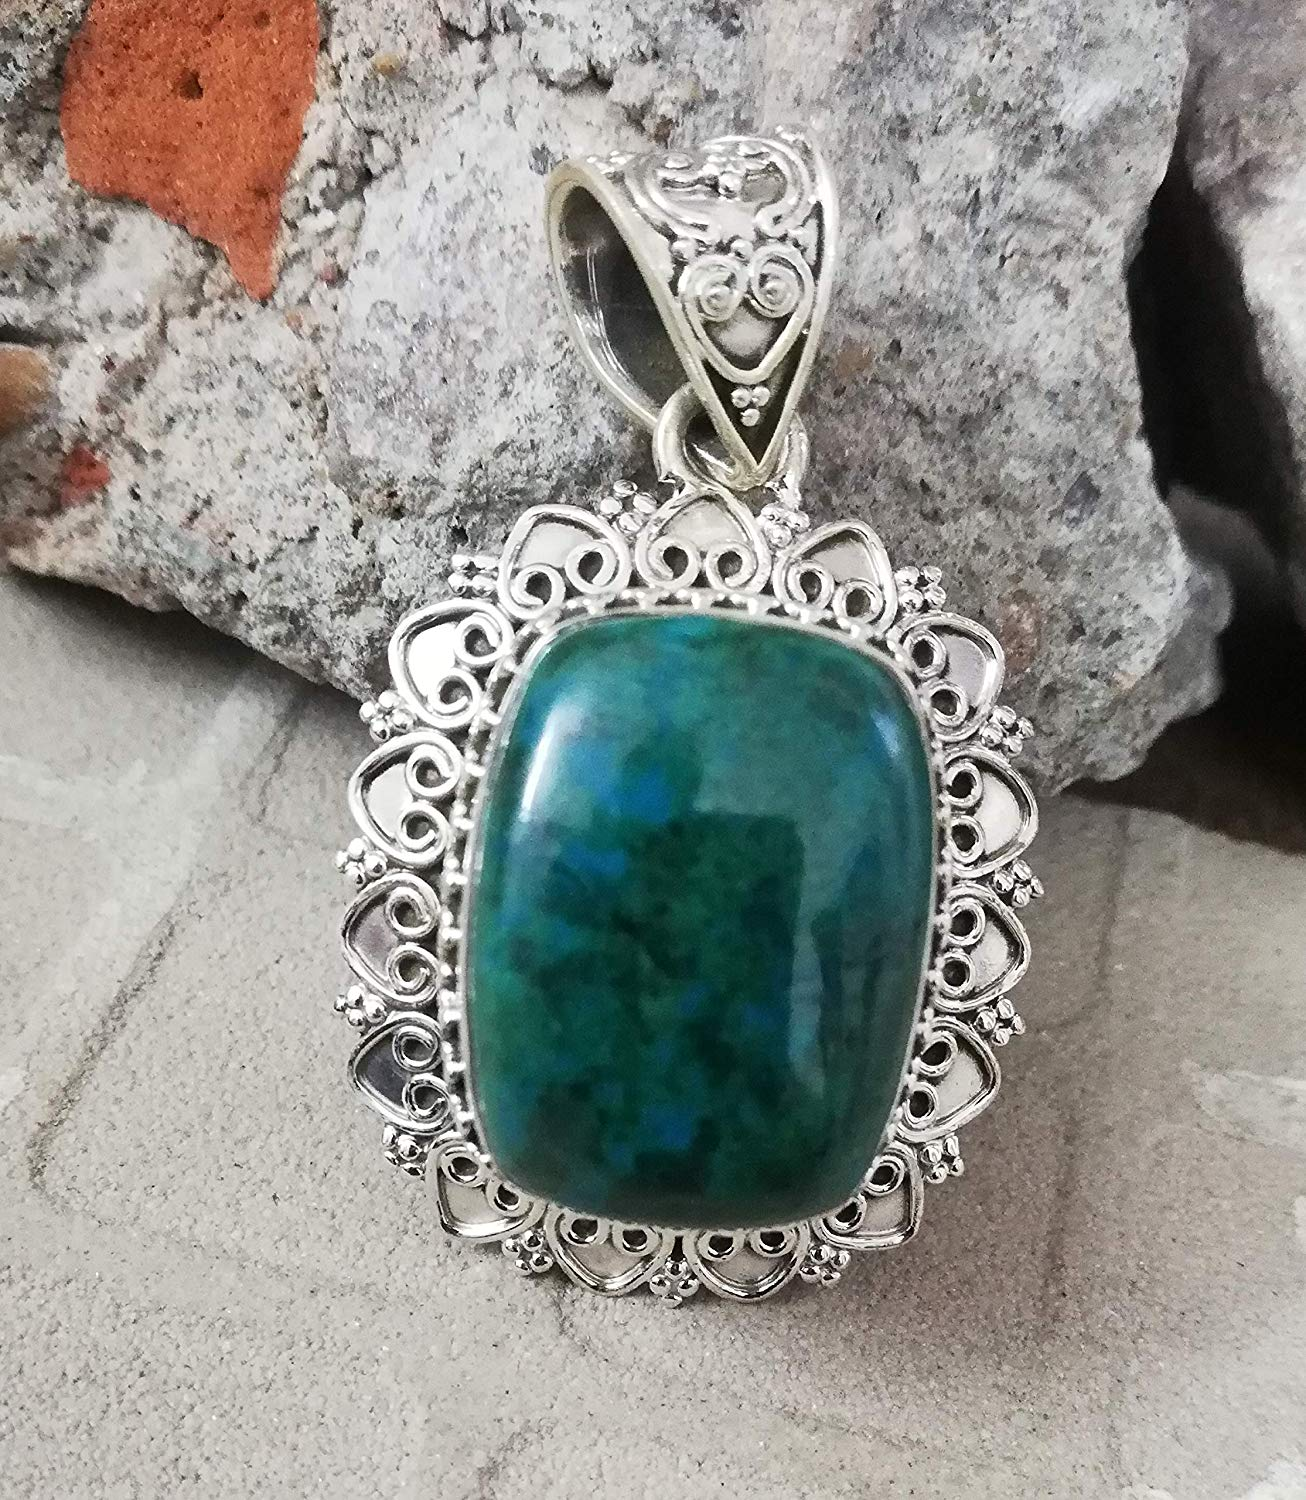 Chrysocolla Pendant 925 Sterling Silver Exquisite Jewellery Long Statement Pendant Handmade Ethnic Gypsy Pendant Delicate Cushion Pendant Extremely Unusual Pendant Victorian Pendant Filigree Jewelry